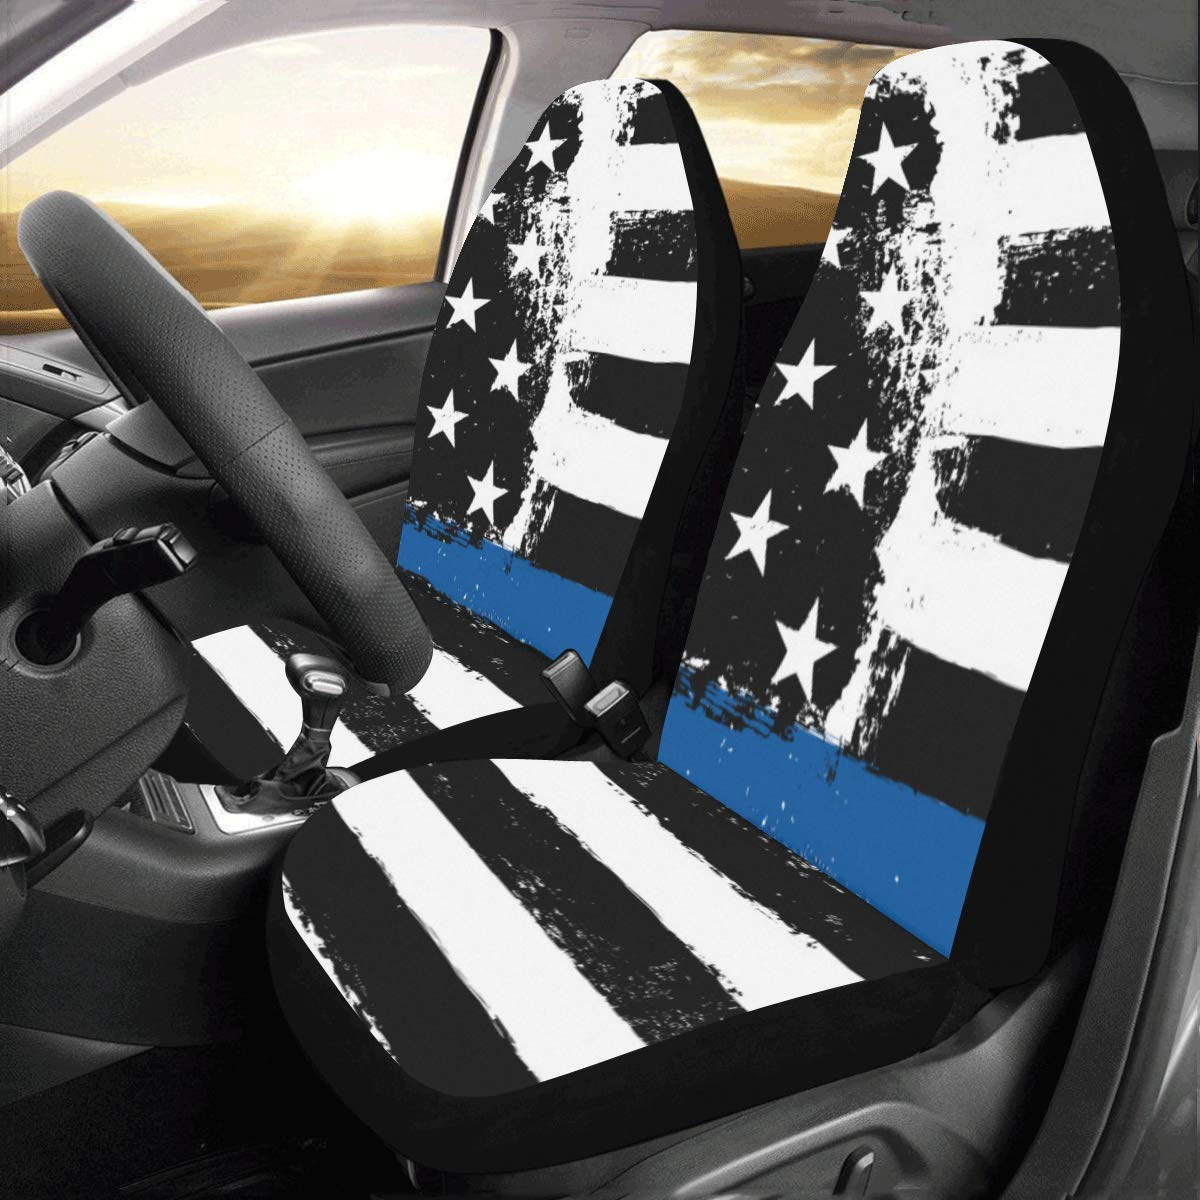 InterestPrint Universal American Flag with Thin Blue Line Two Front Car Seat Covers Set -100% Breathable